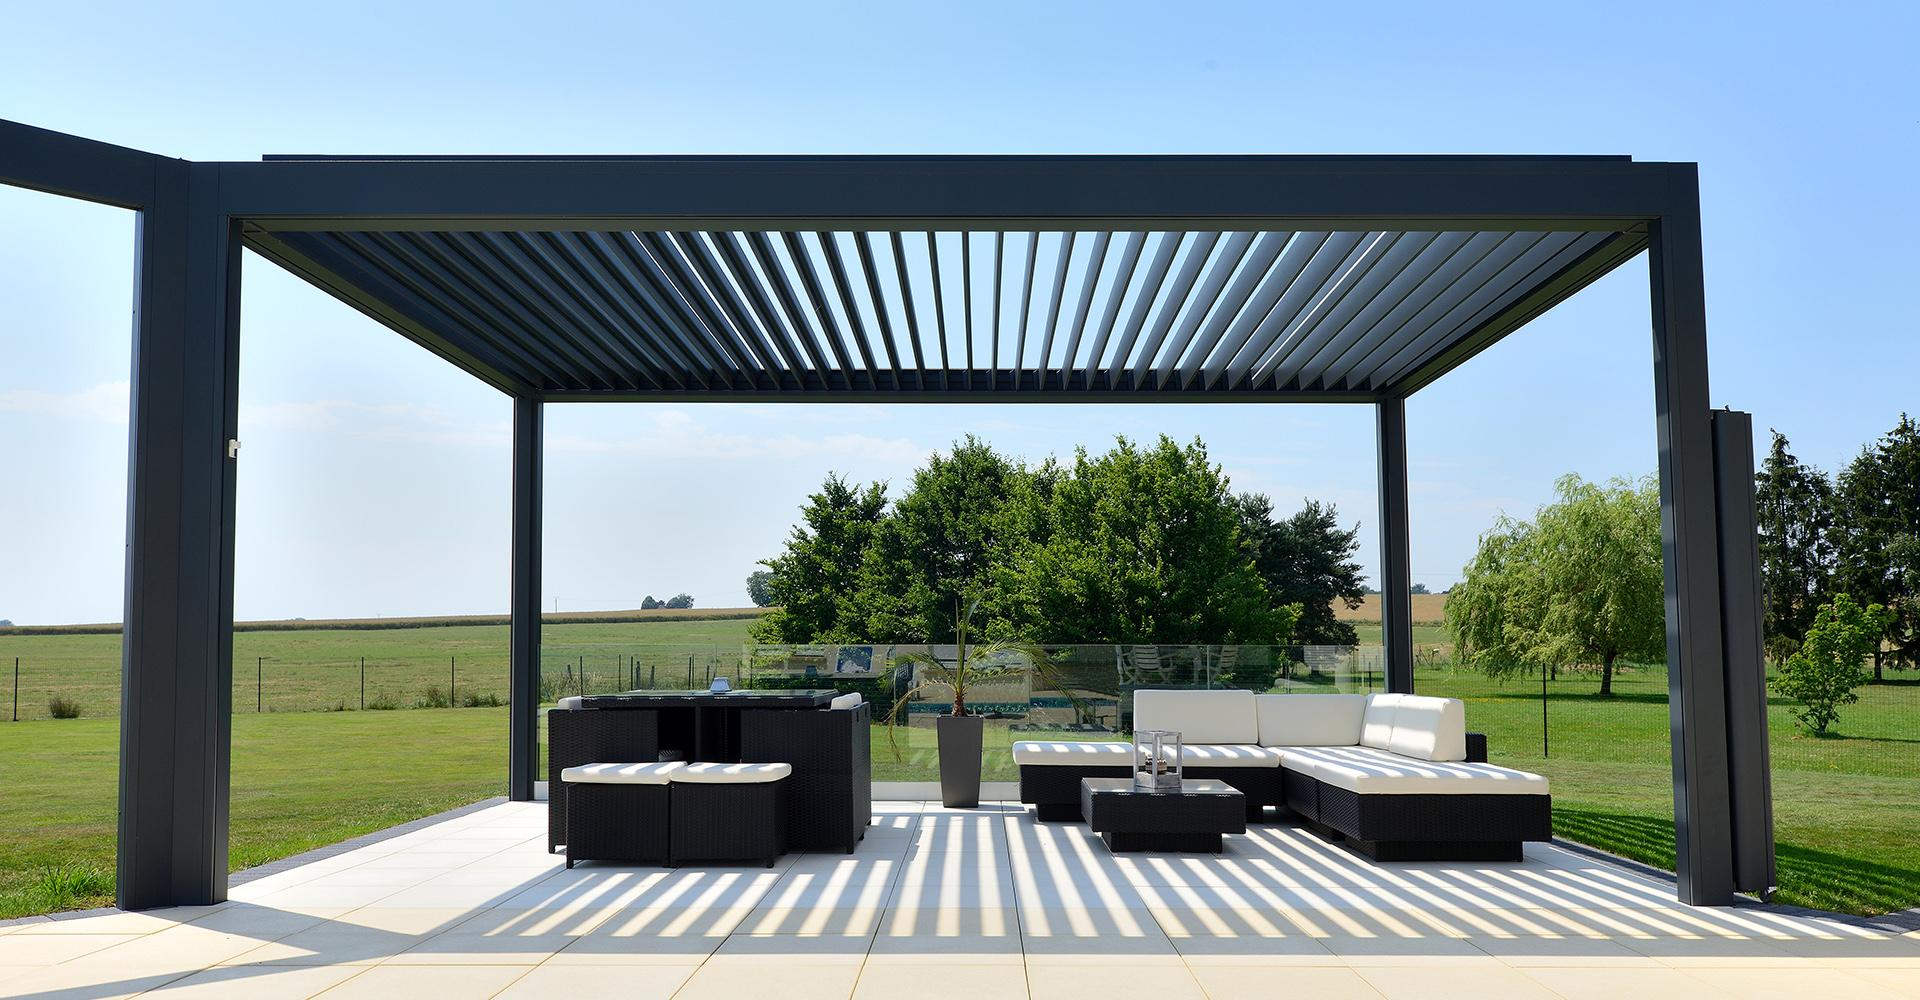 sonnensegel lamellendach pergola terrassendach markise. Black Bedroom Furniture Sets. Home Design Ideas